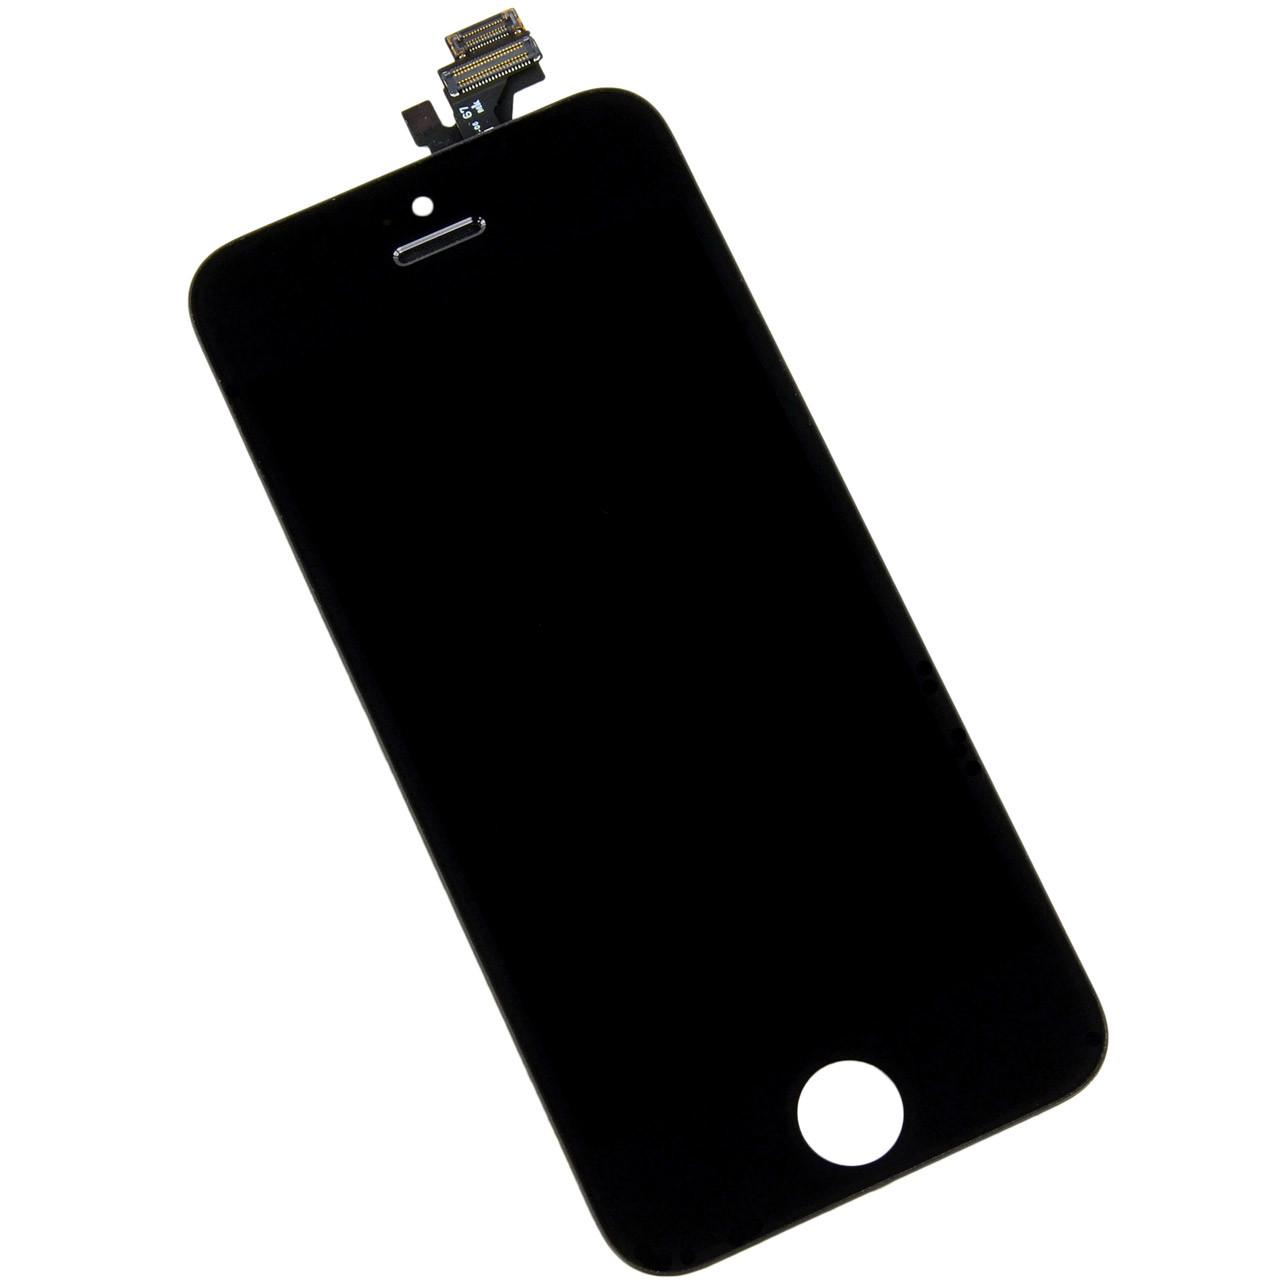 Retina HD Original LCD IPhone 7 Screen Replacement Polarizer Supported Black Color